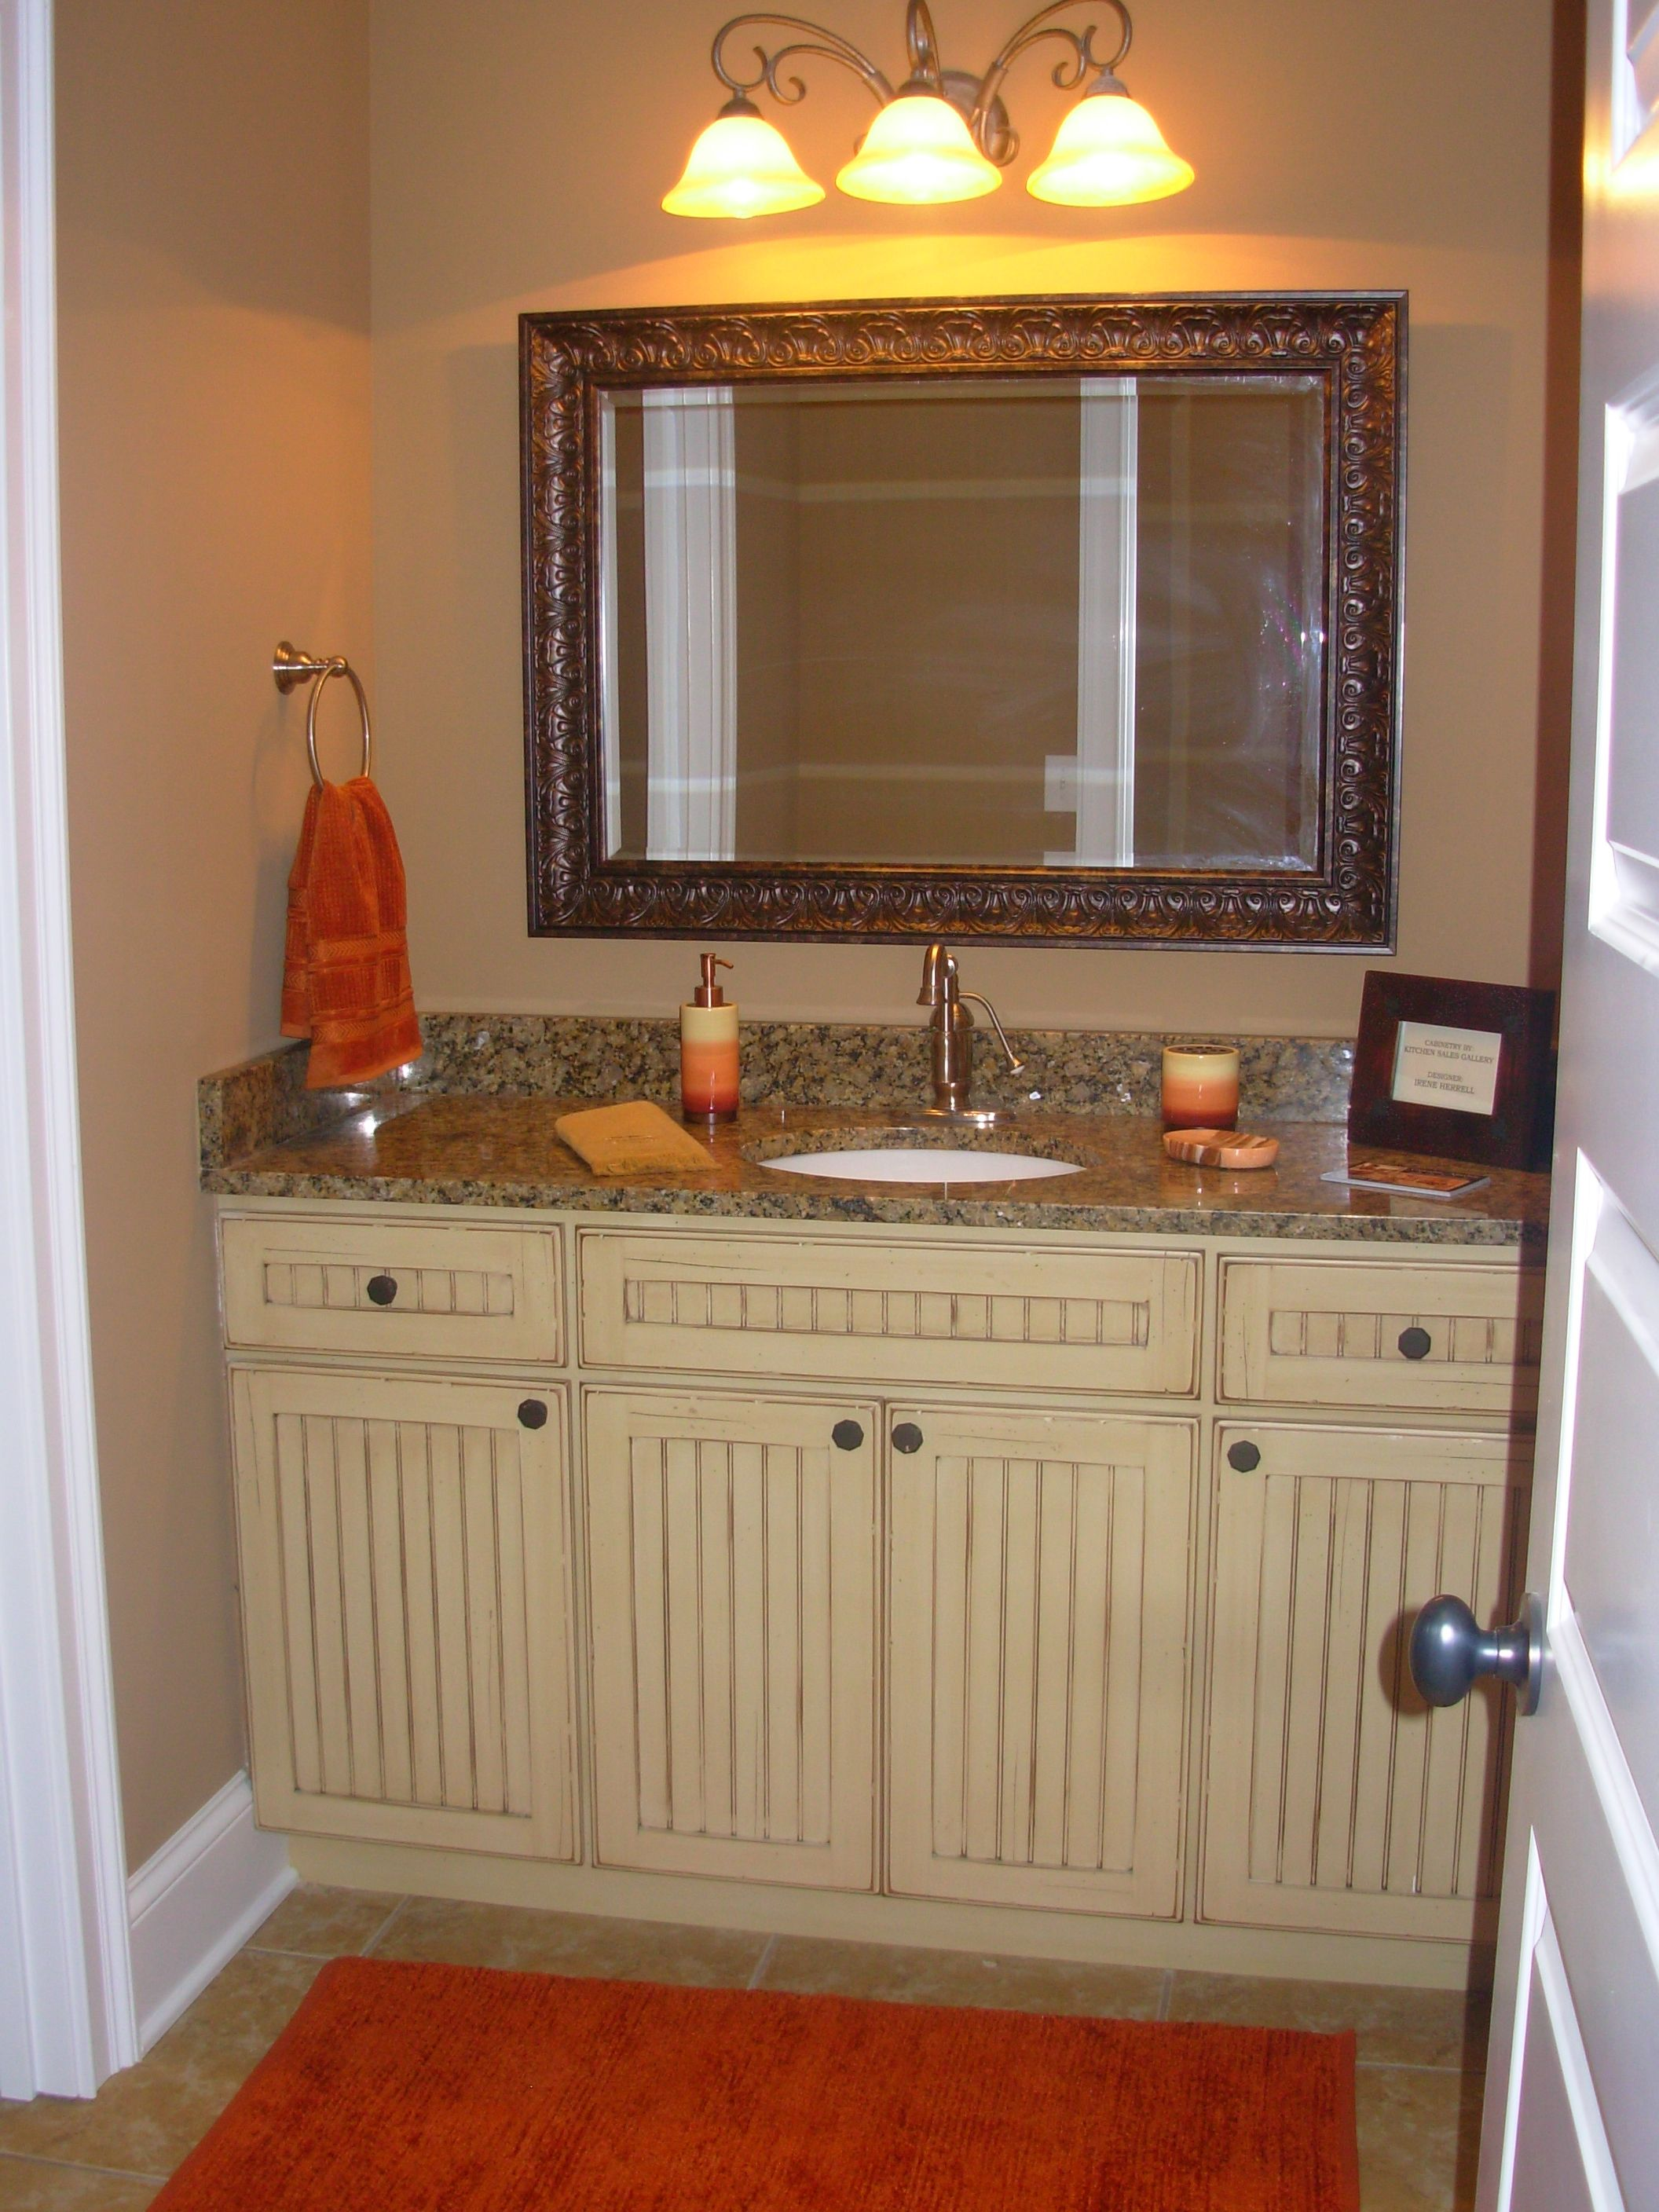 Beadboard Cabinets Luxe Homes Design Knoxville Builder Jefferson Park Knoxville With Images Beadboard Bathroom Design Kitchen Design